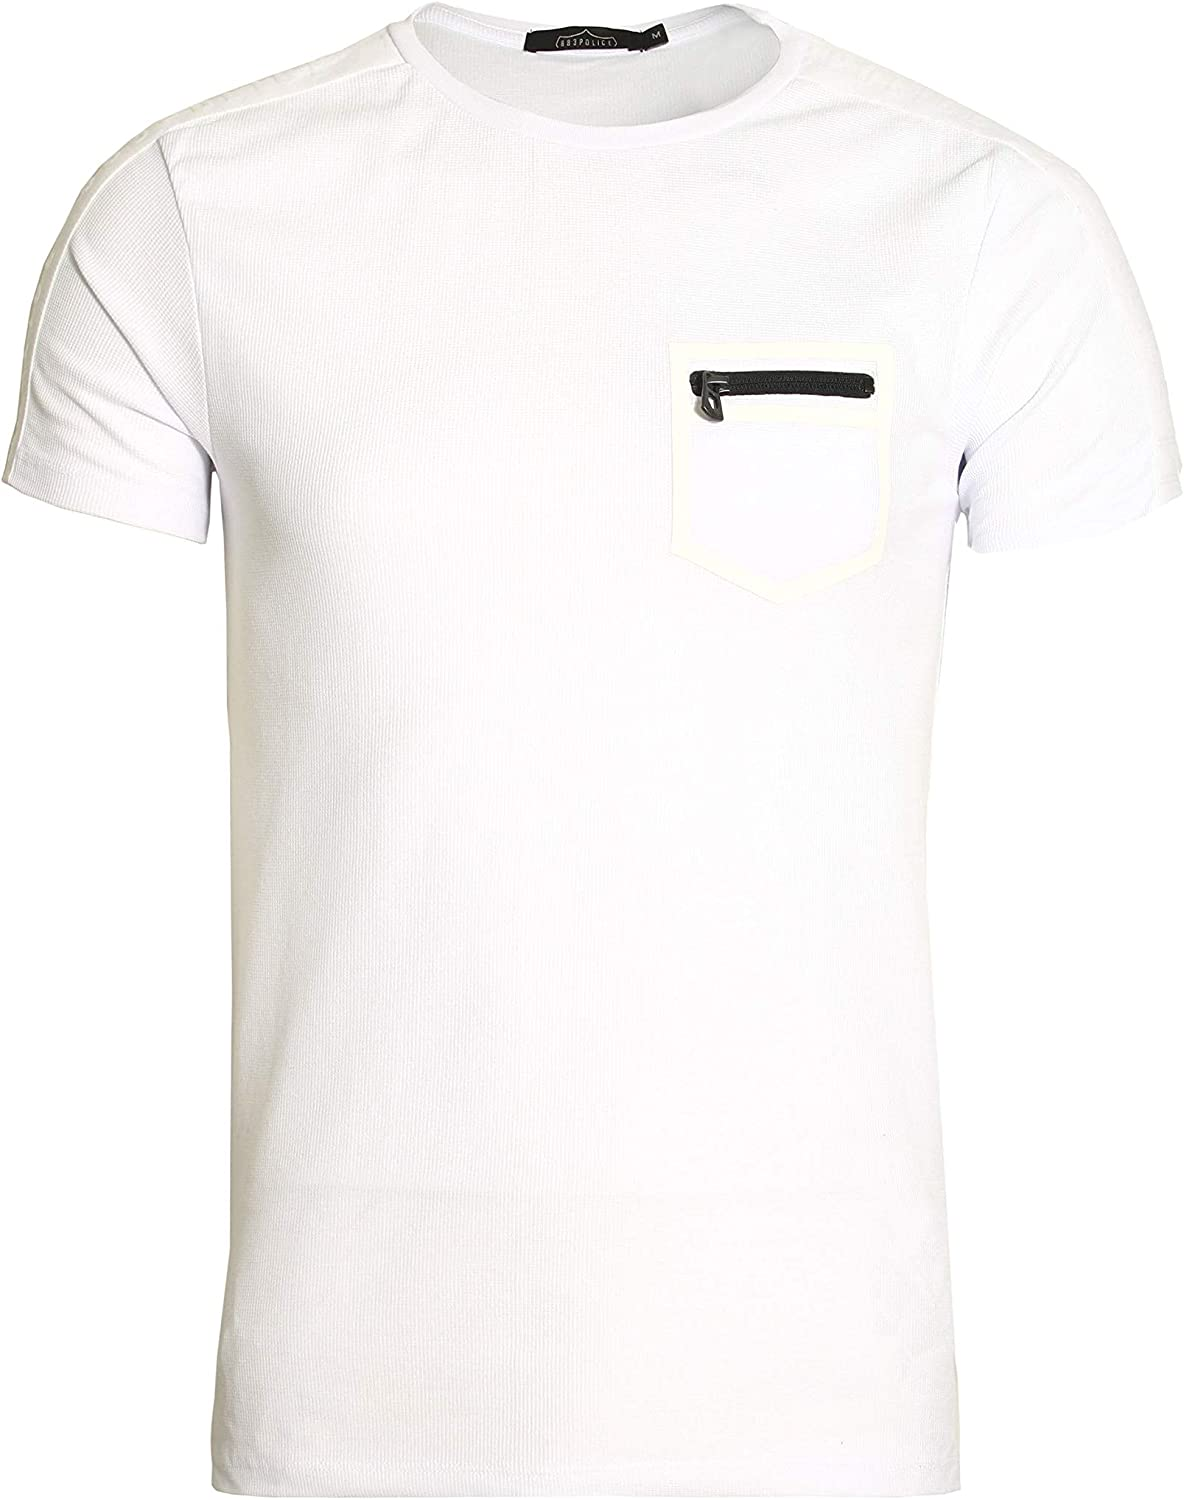 883 Police Mirto Pocket T-Shirt | White: Amazon.es: Ropa y accesorios